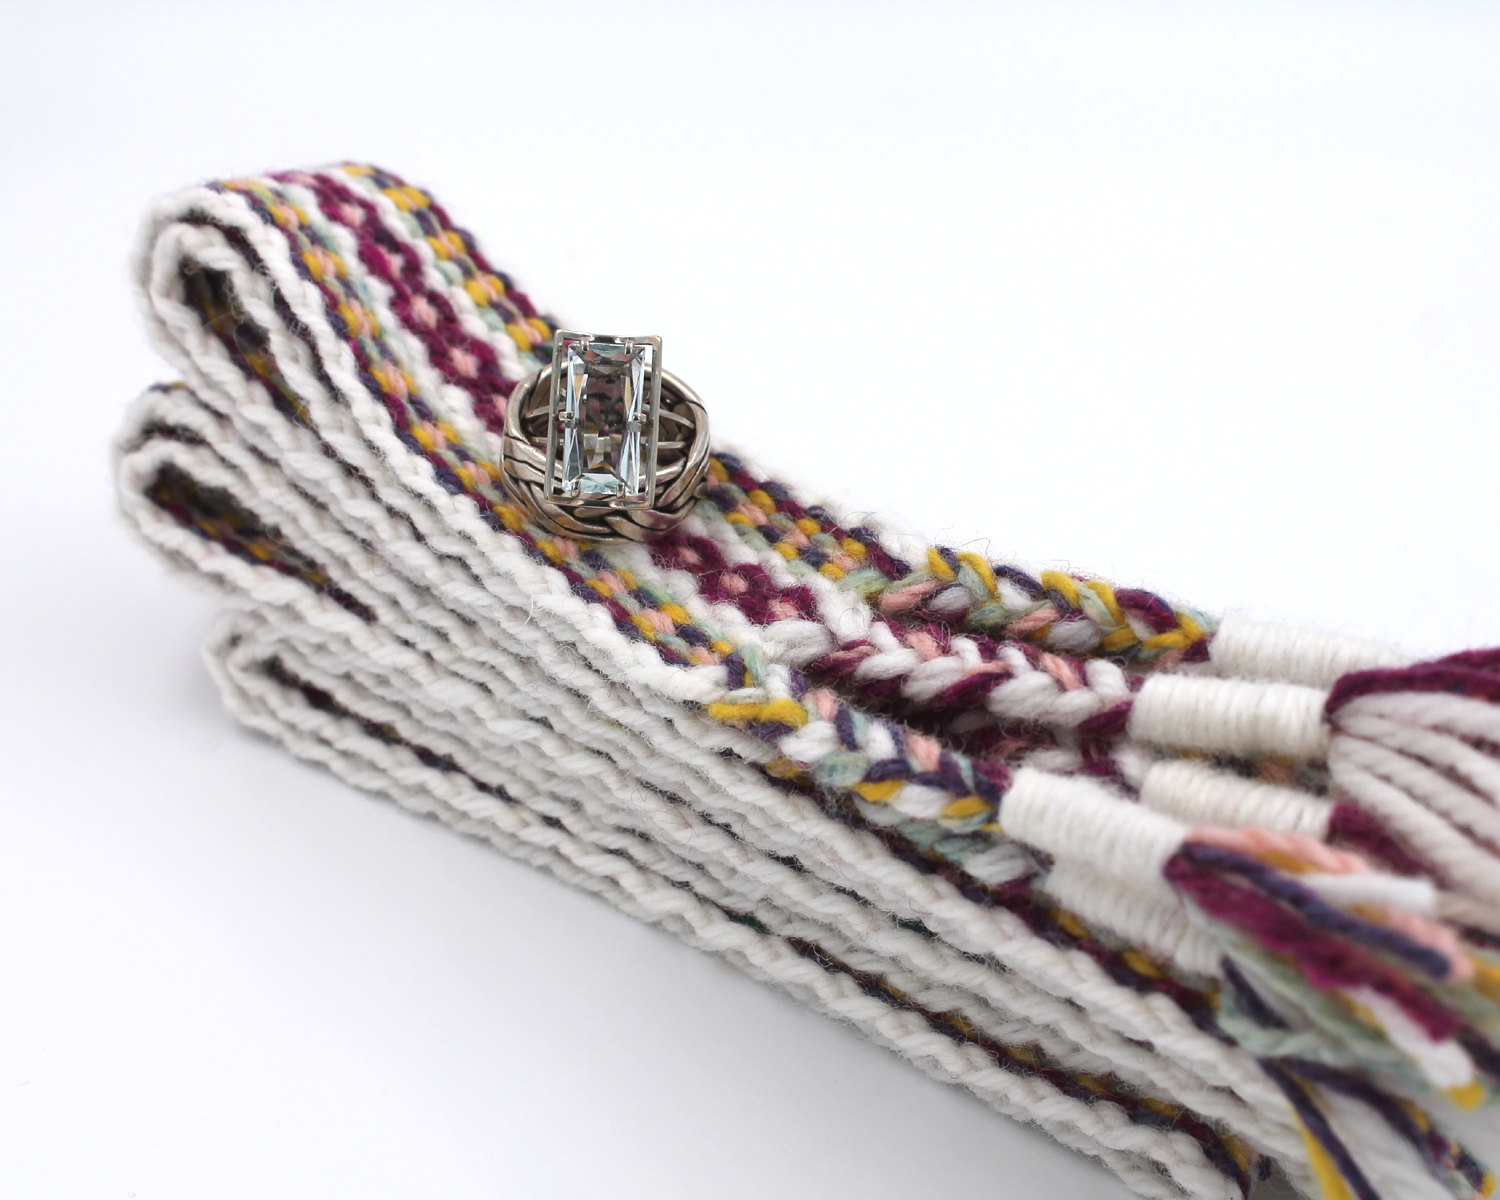 Handfasting cord - sweet dreams  3